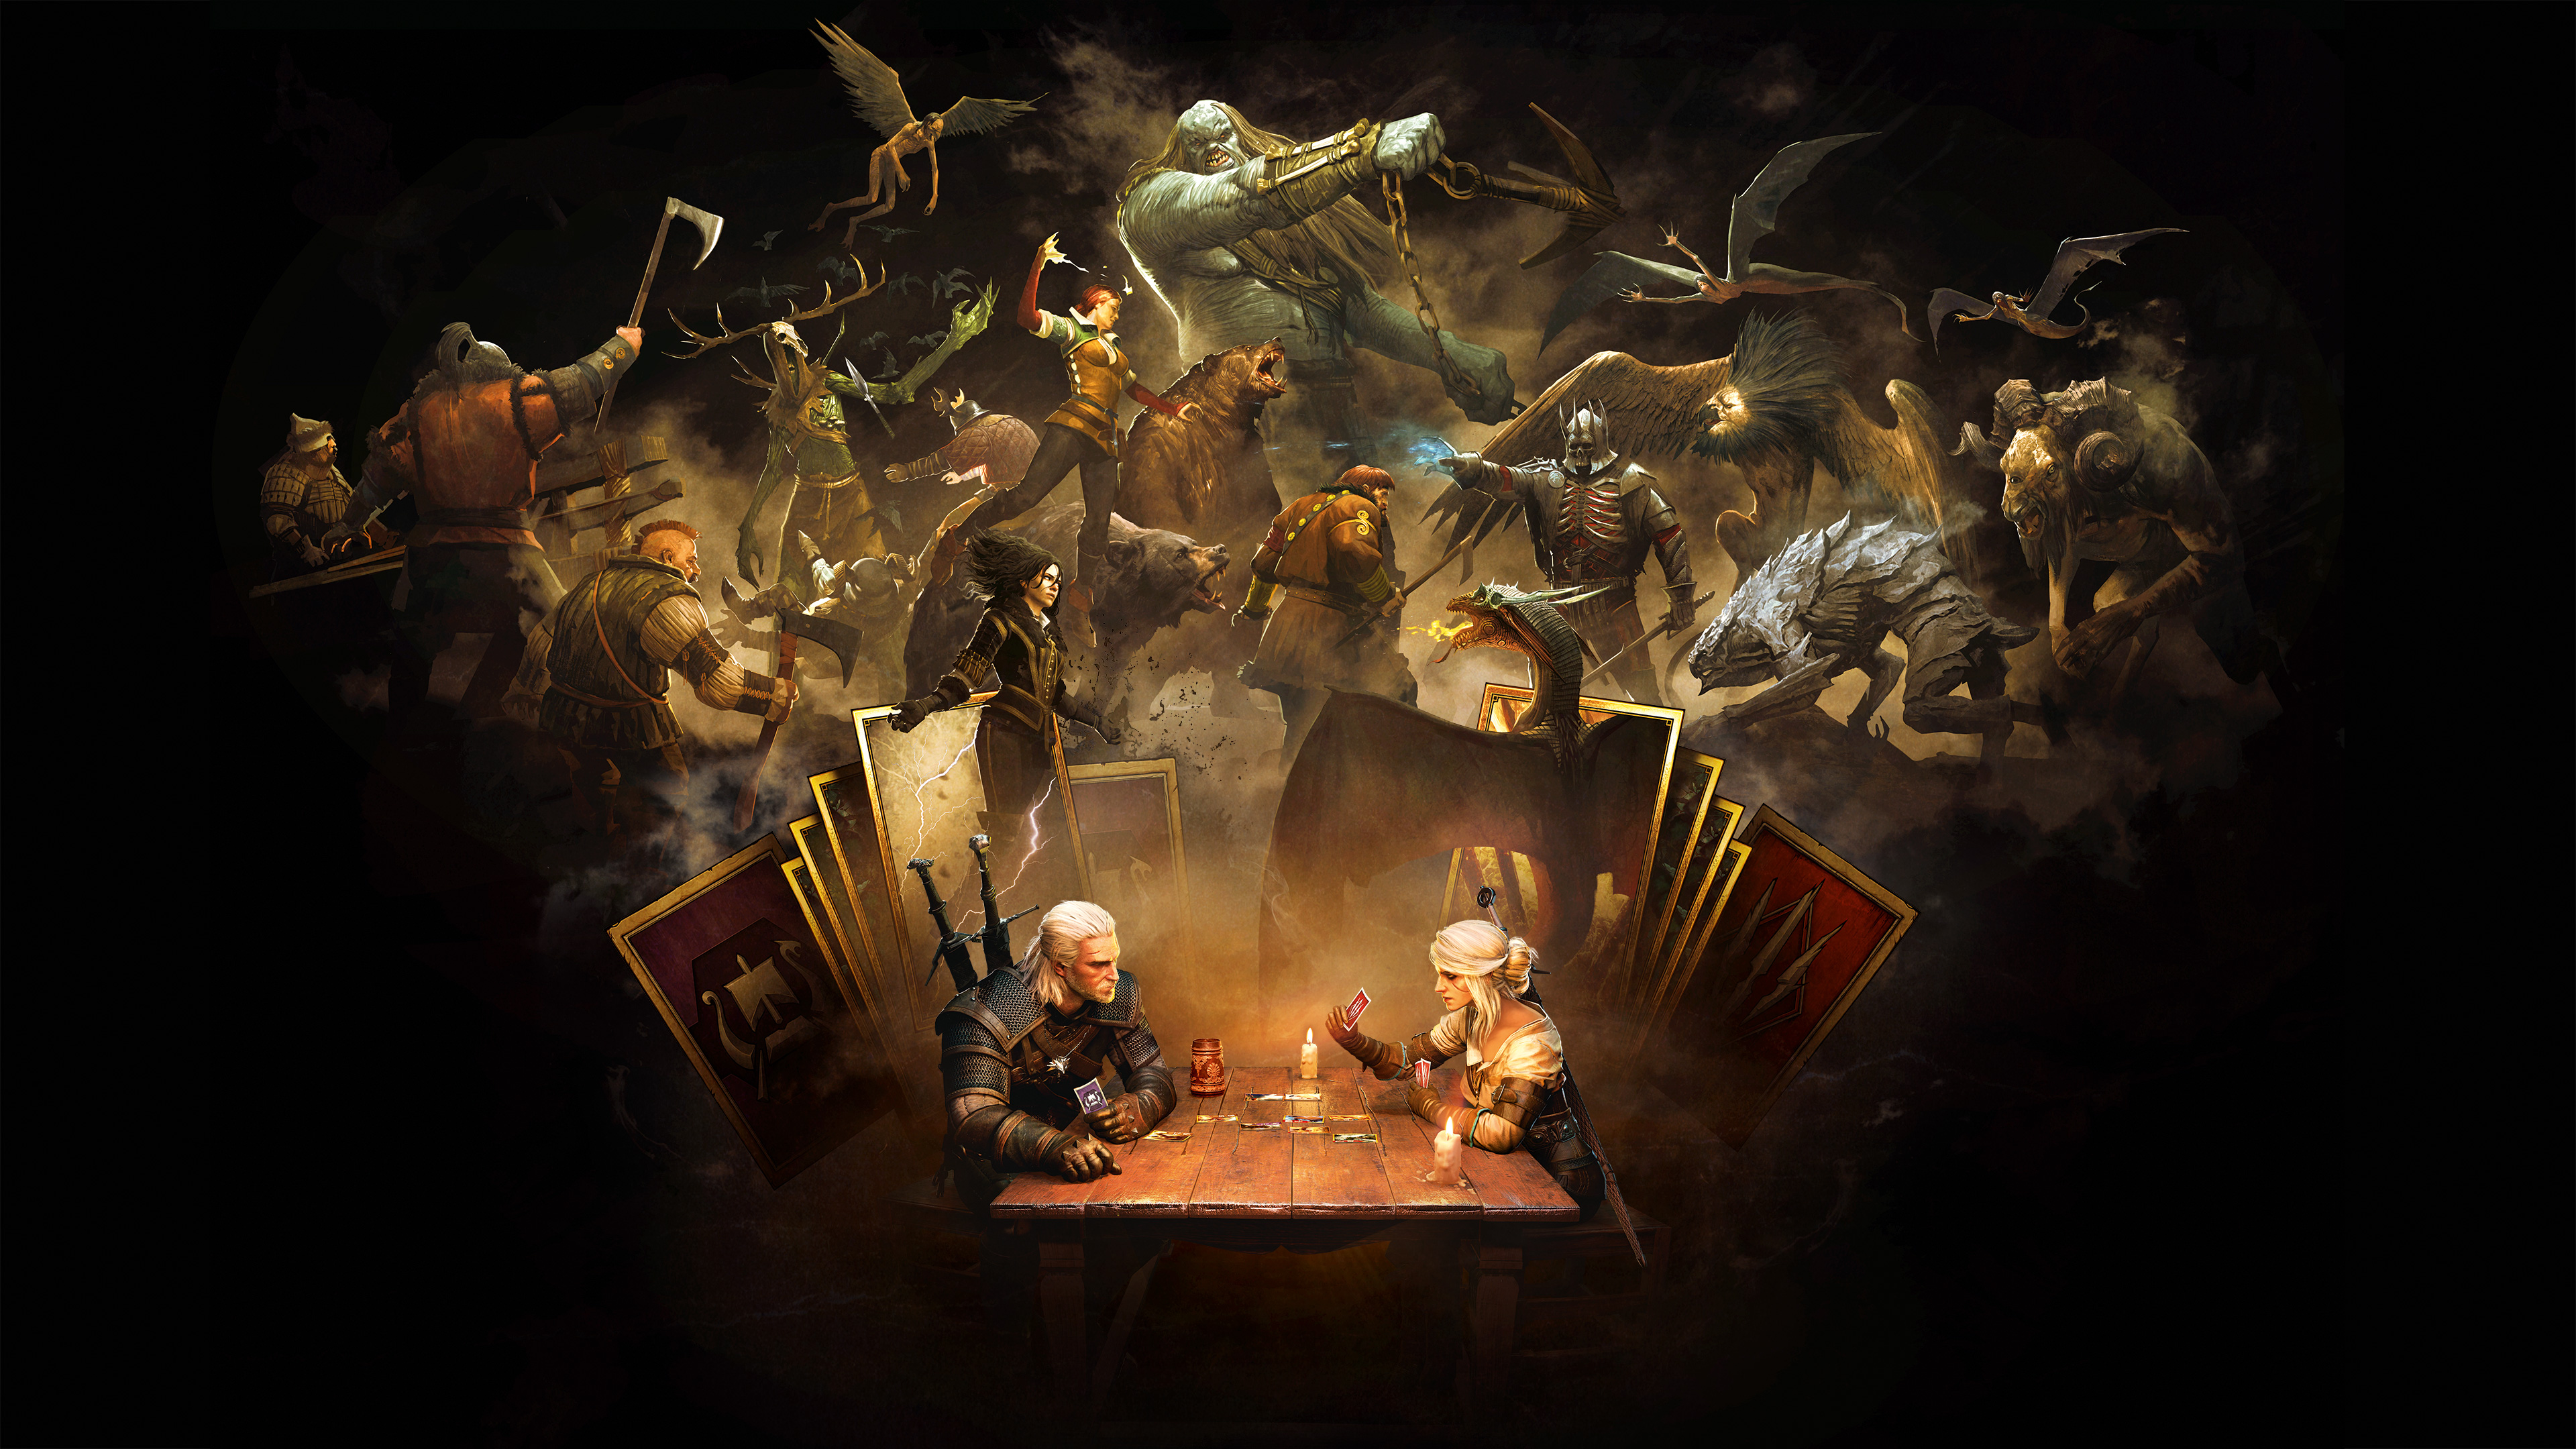 Gwent the witcher card game hd games 4k wallpapers - The witcher wallpaper 4k ...